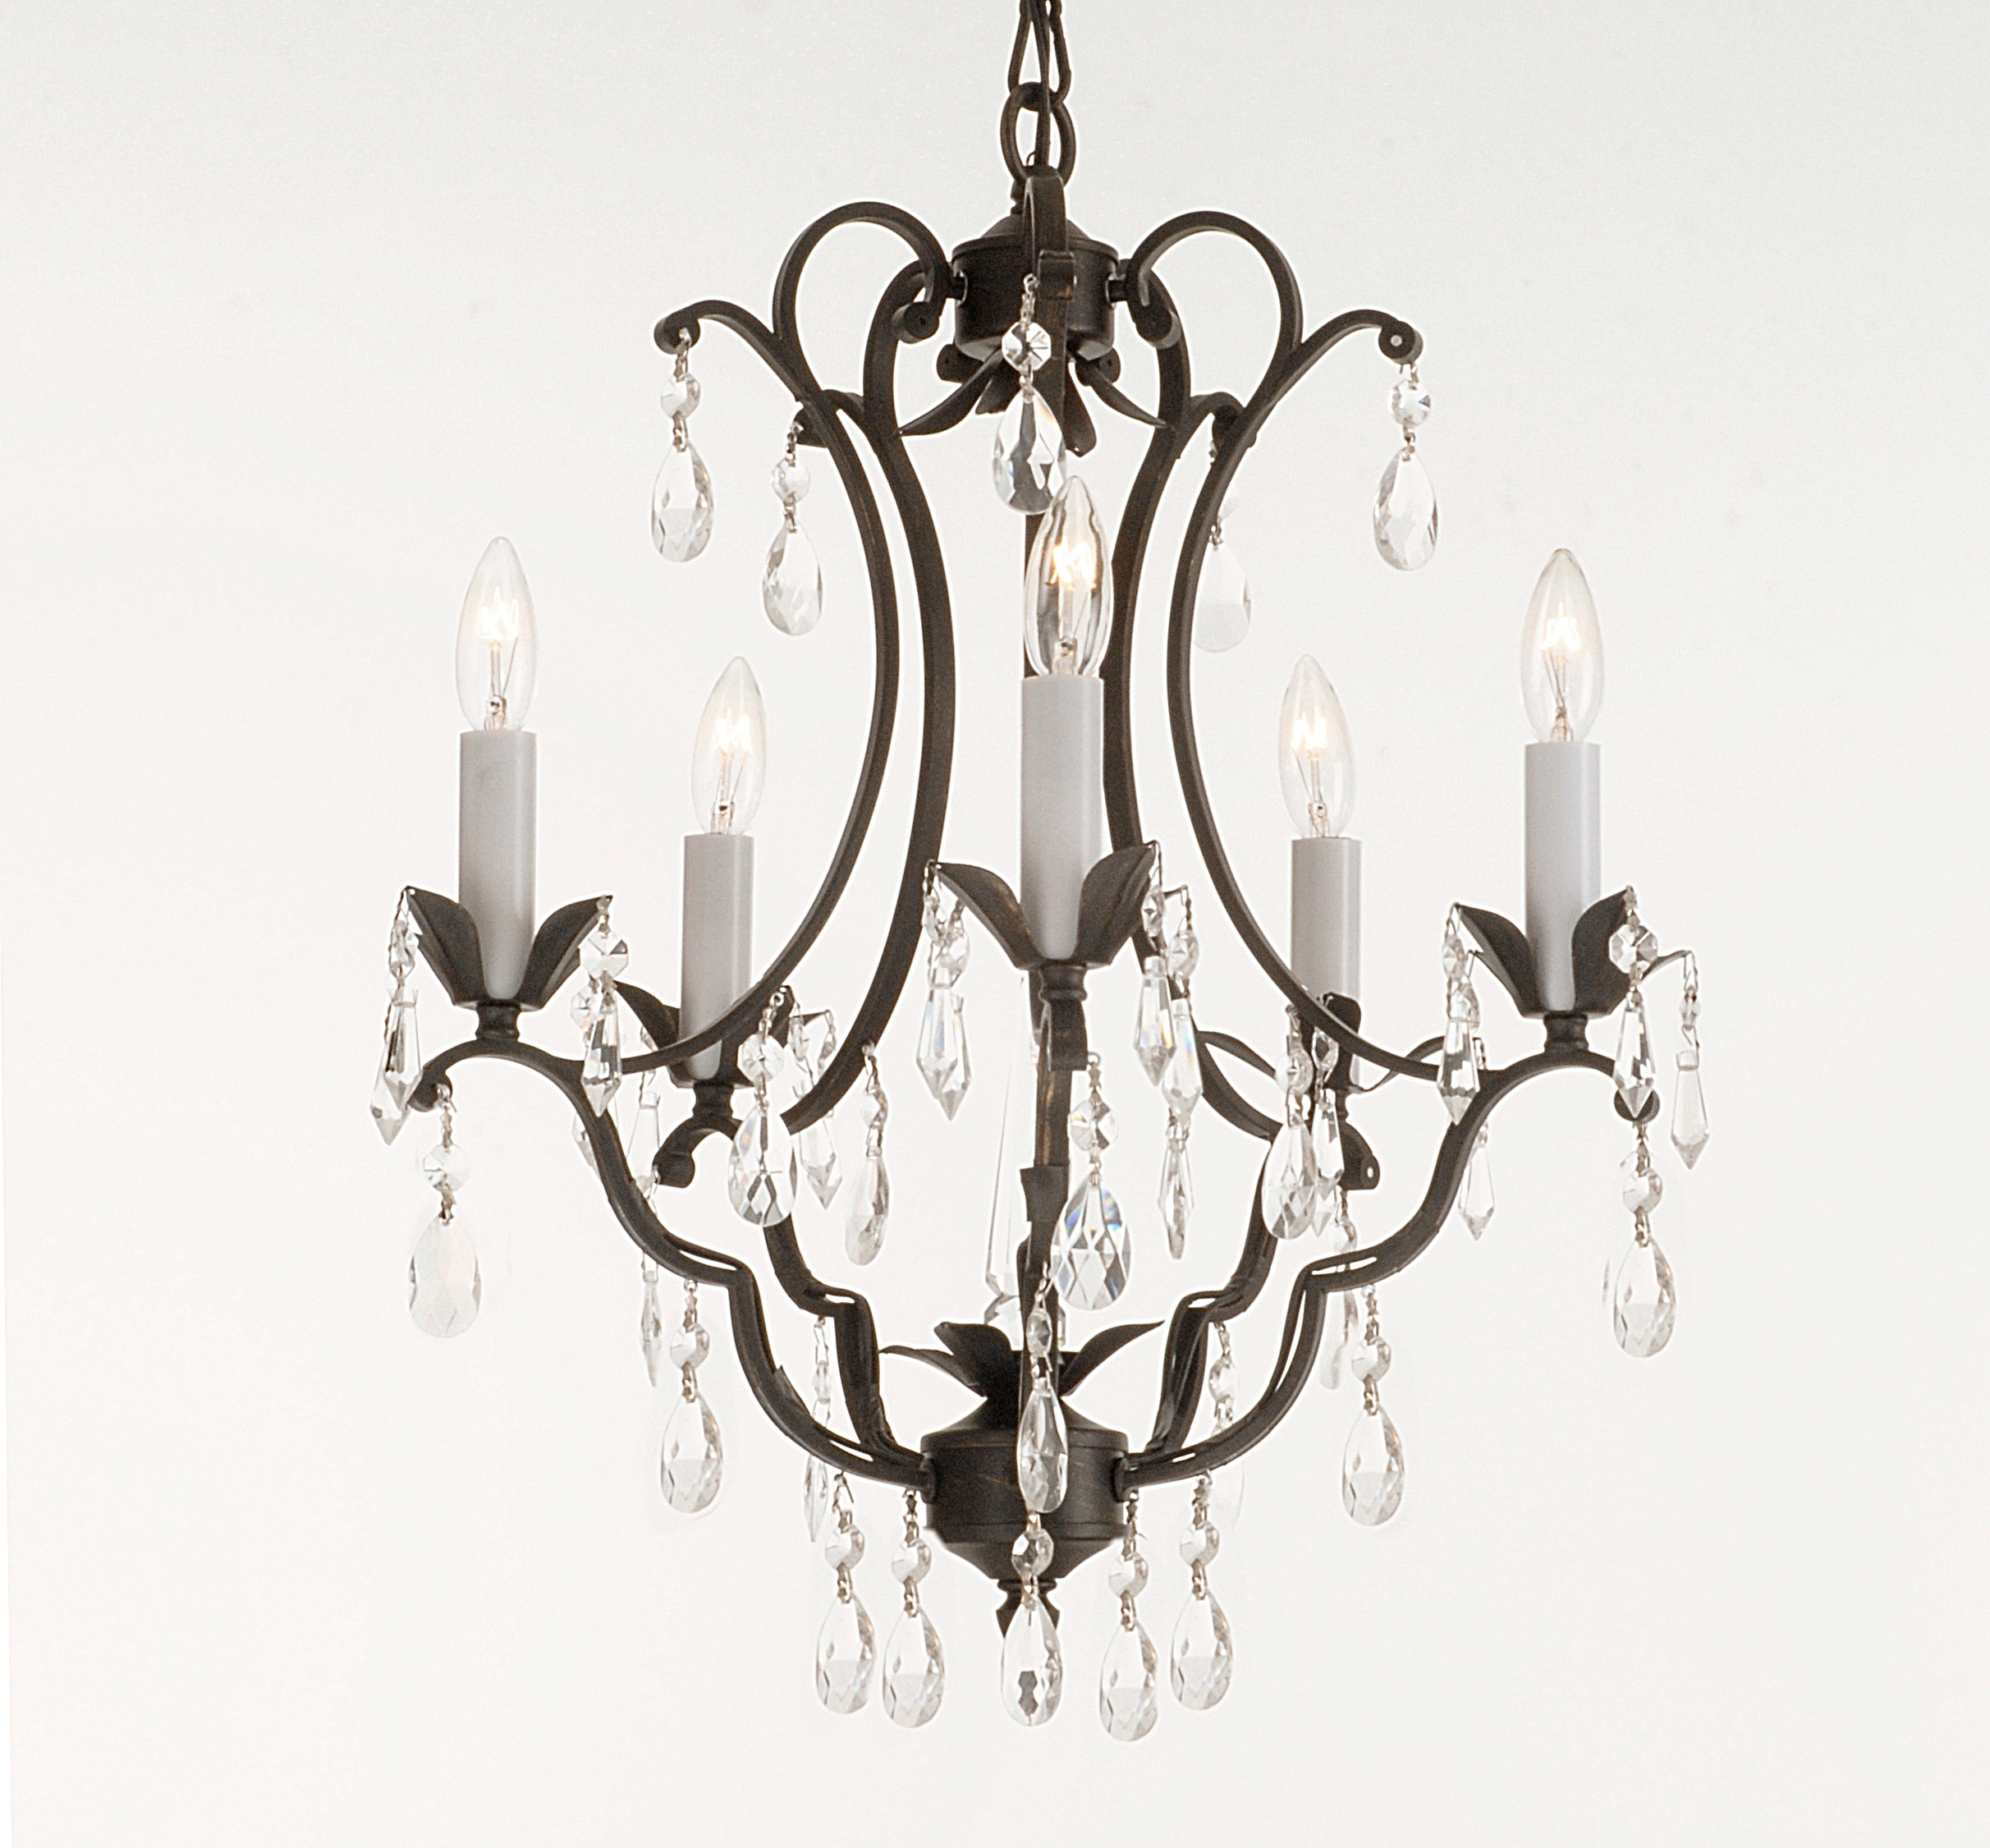 Widely Used Light : Furniture Vintage Look Modern Black Wrought Iron Chandeliers Regarding Modern Wrought Iron Chandeliers (View 20 of 20)